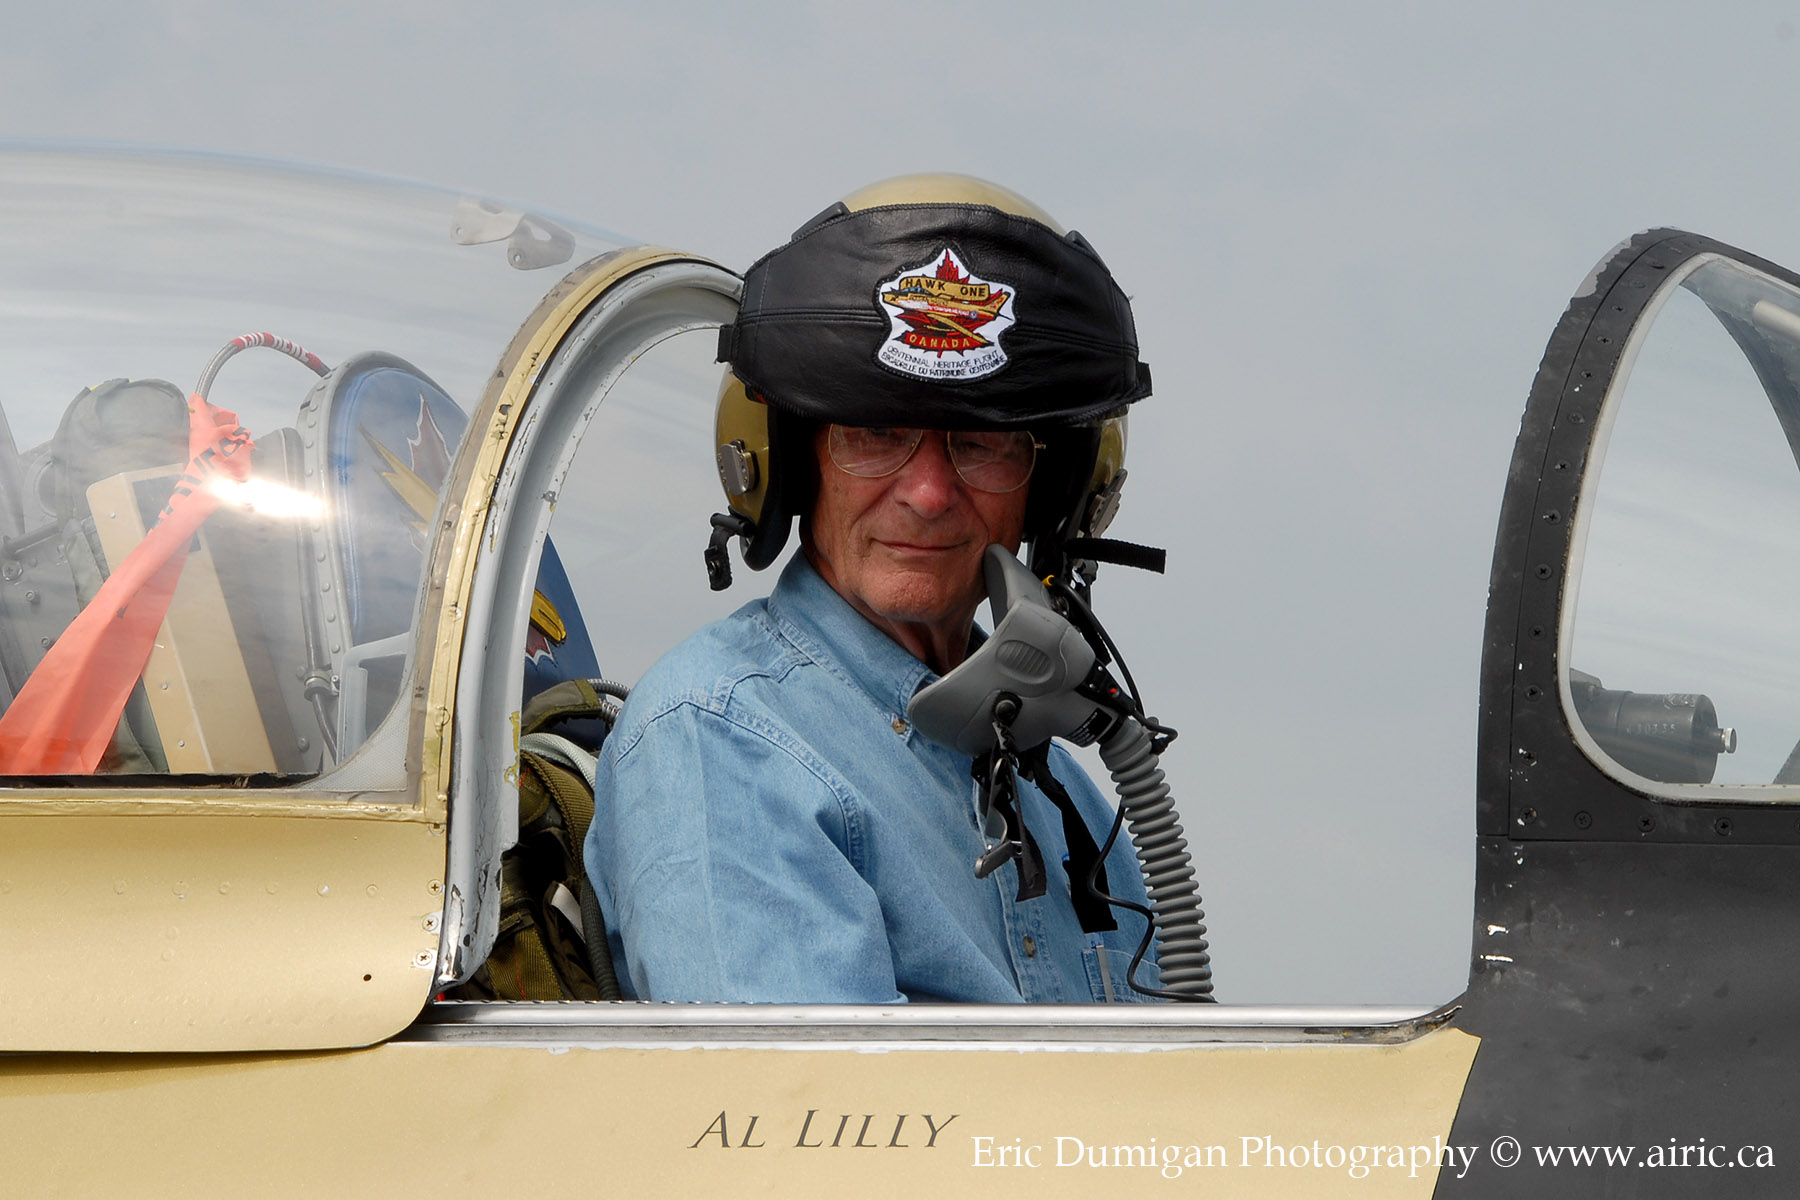 An older man, wearing a flying helmet, sits in the cockpit of a small aircraft that has its canopy open.